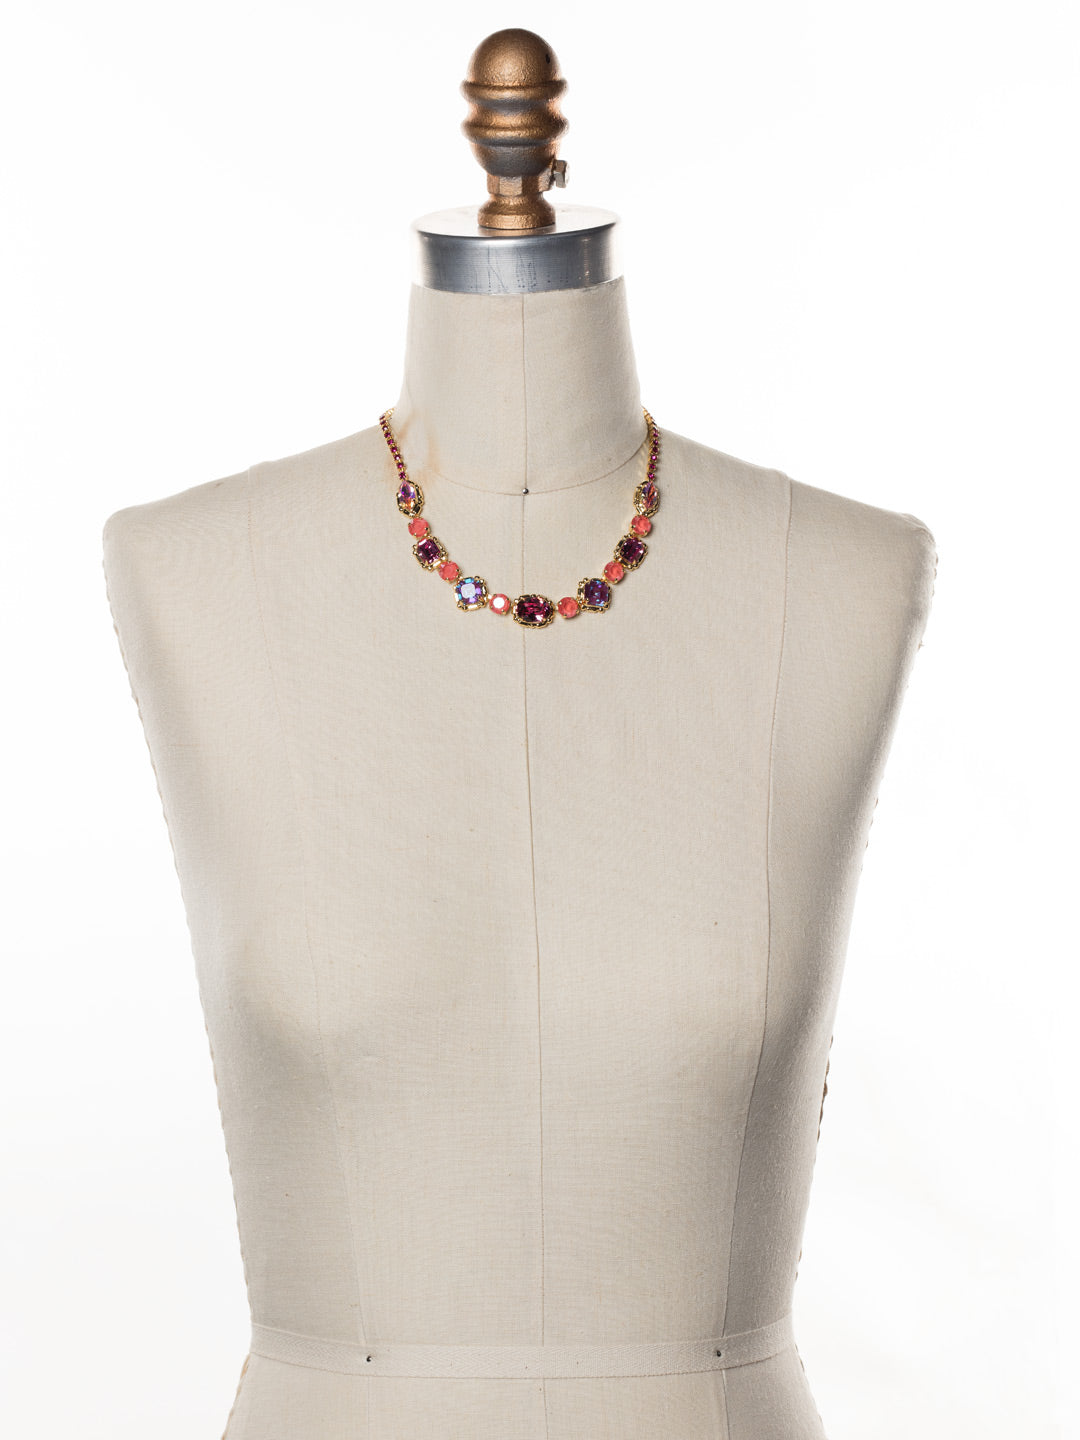 Cardoon Tennis Necklace - NDX7BGBGA